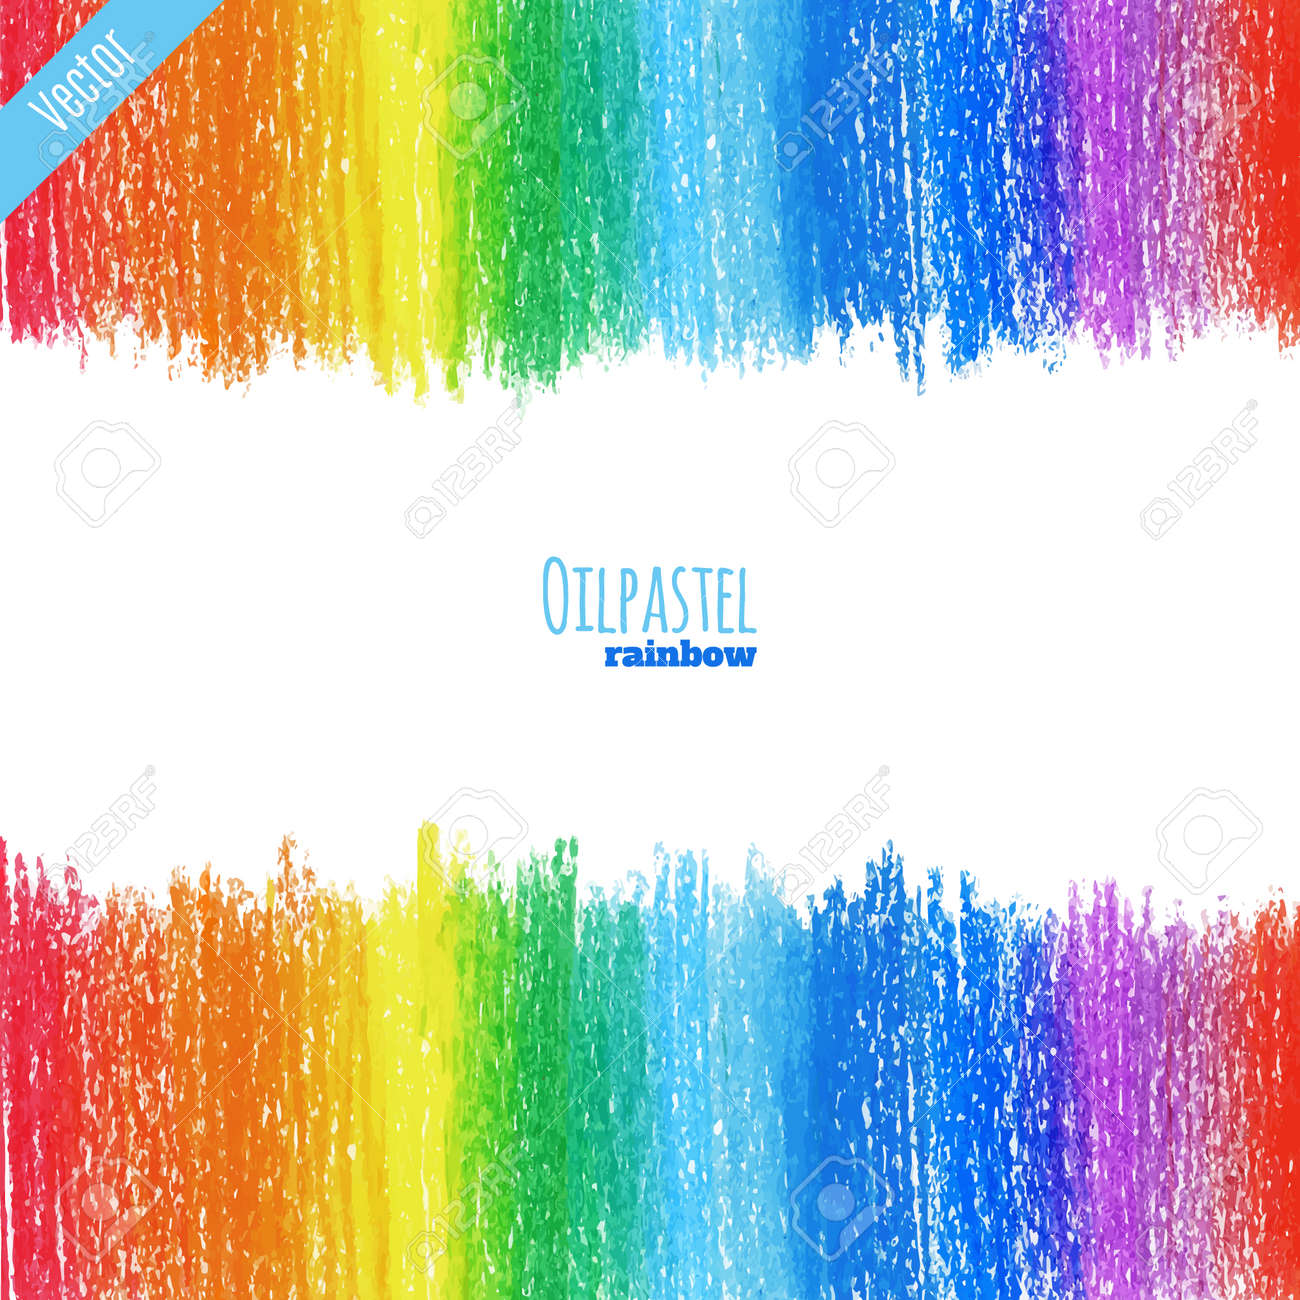 hand drawn colorful oil pastel rainbow background crayon background